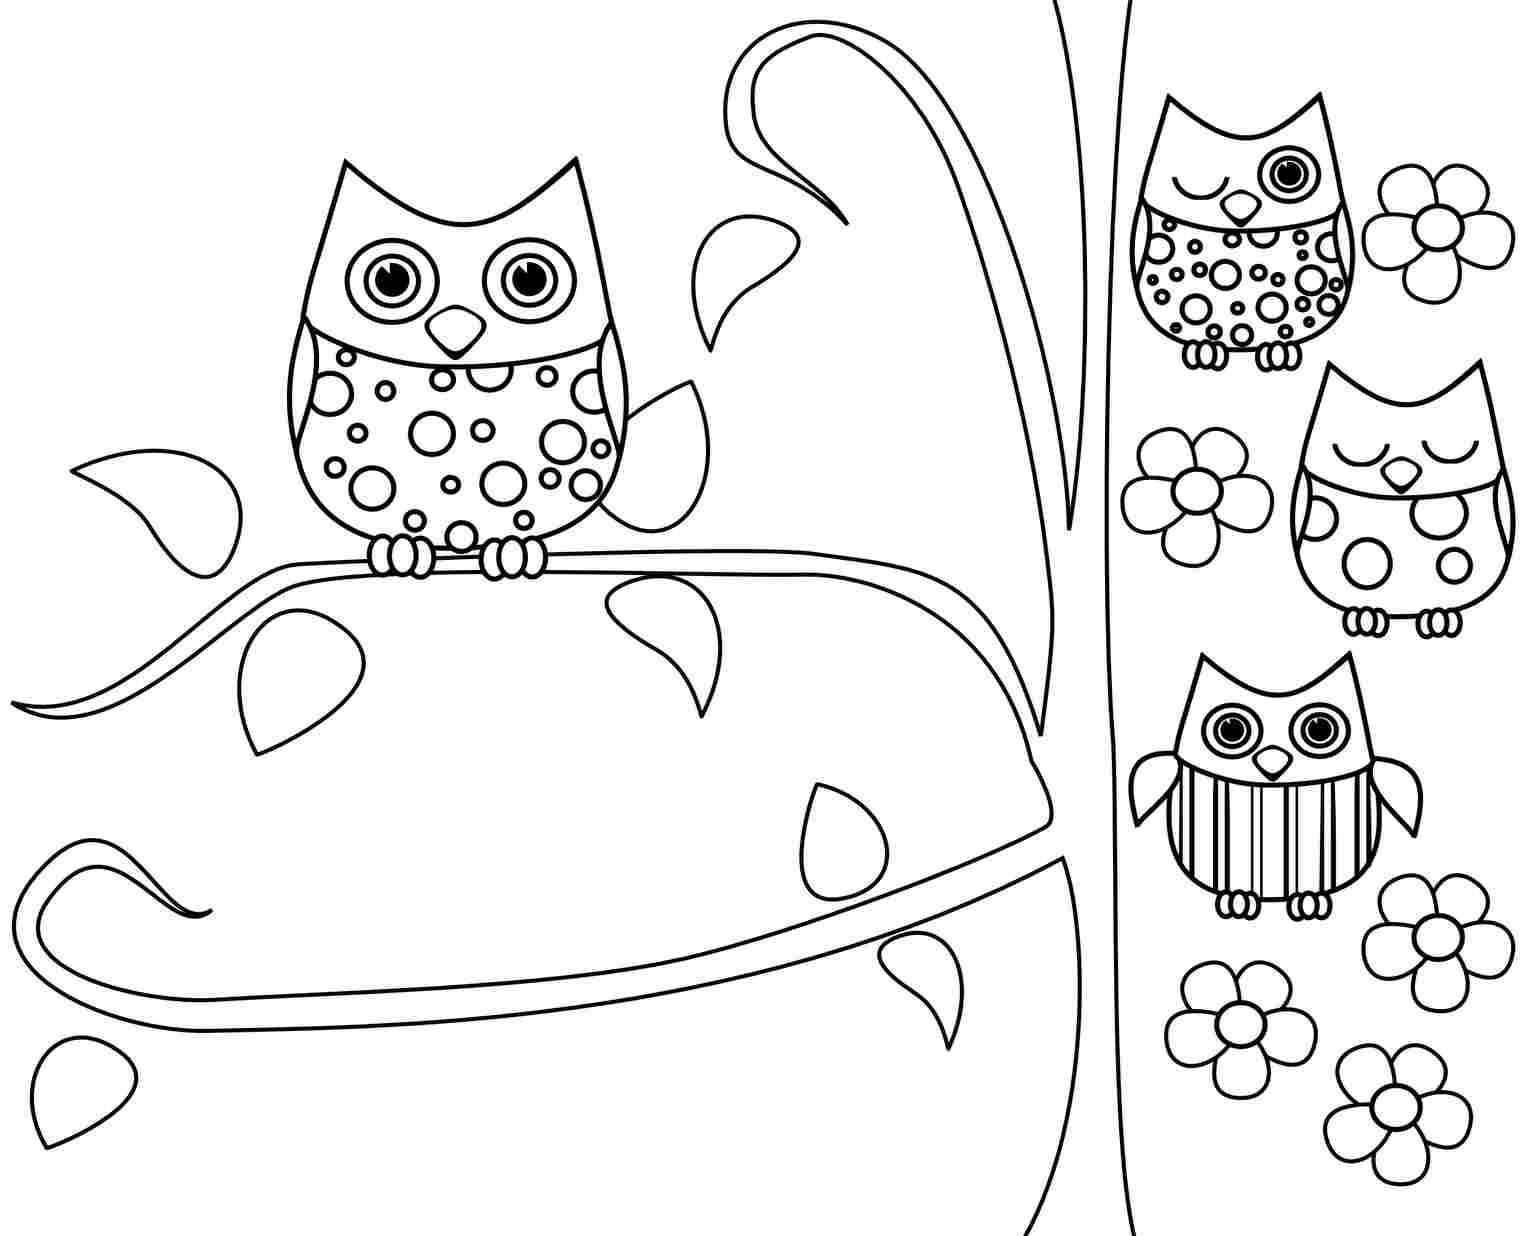 Owl coloring pages free - Owl Coloring Pages 1884 Owl Coloring Pages Printable Free Jpg